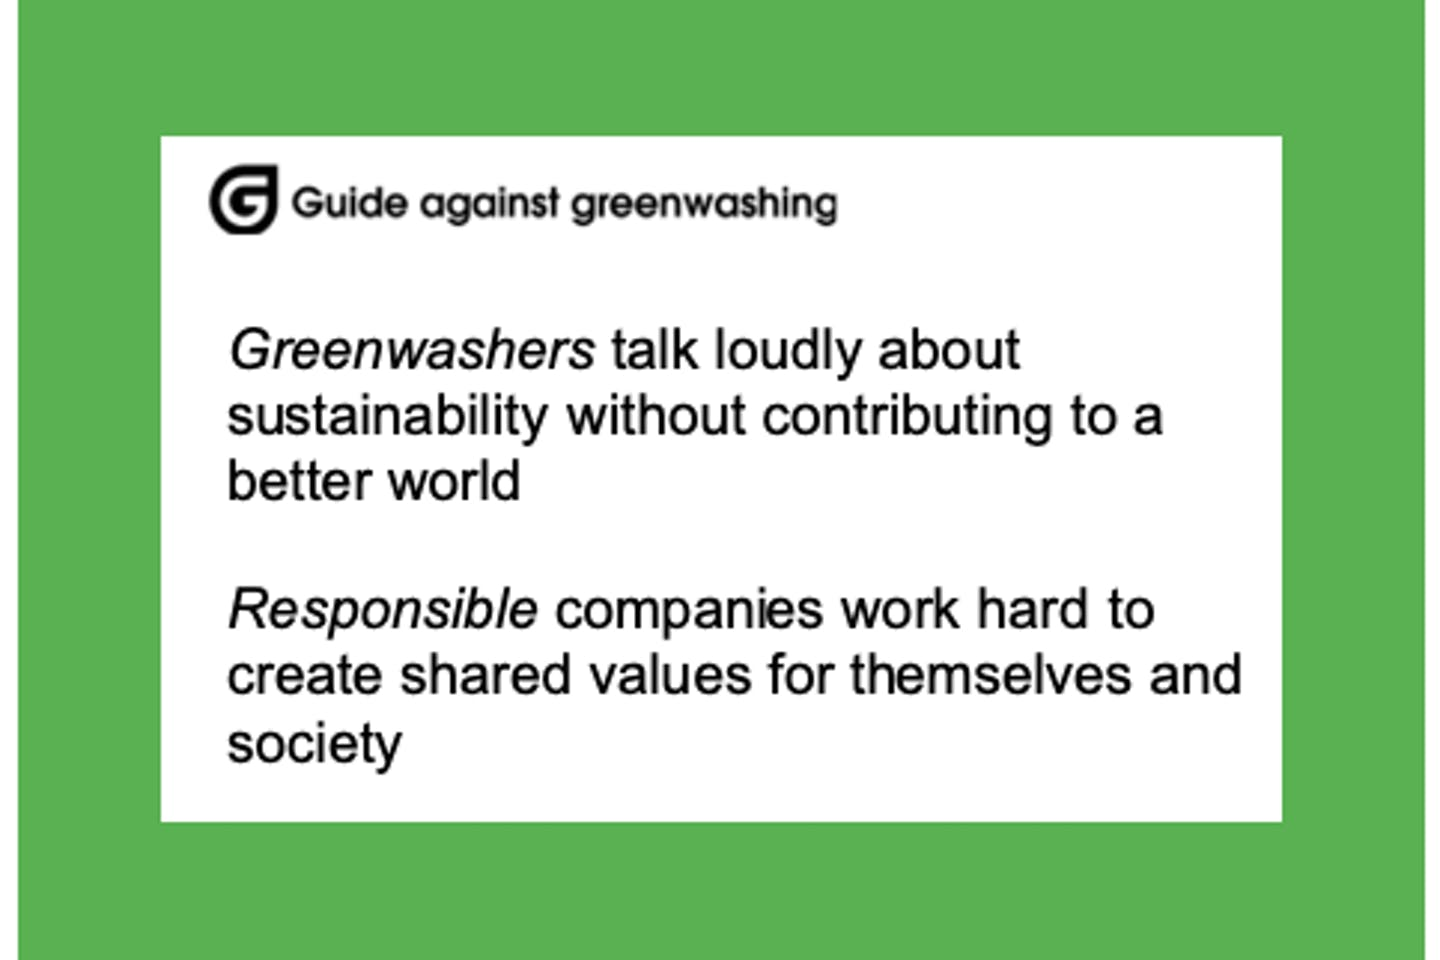 The Guide Against Greenwashing from Norway